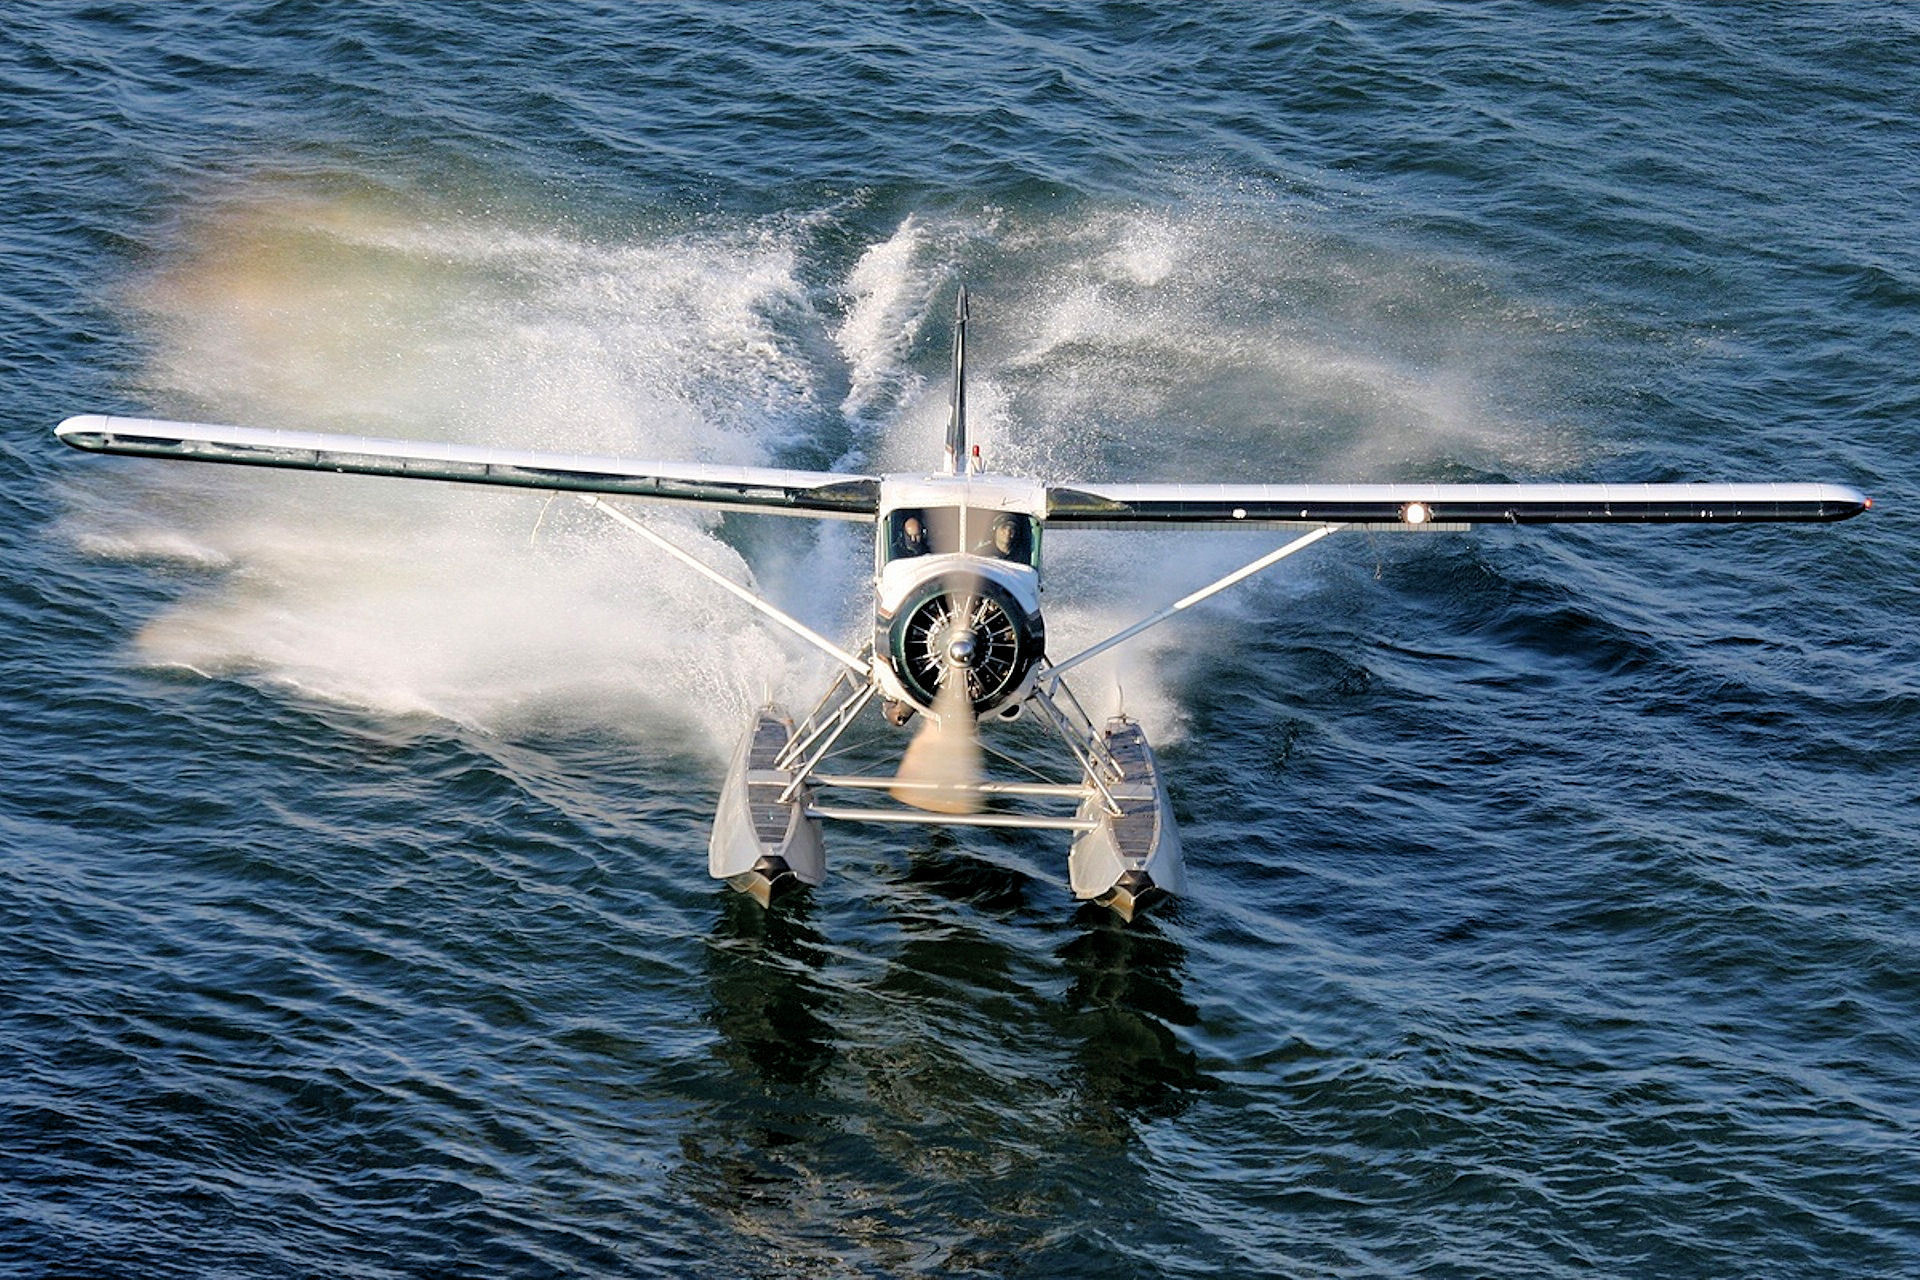 Aircraft on water